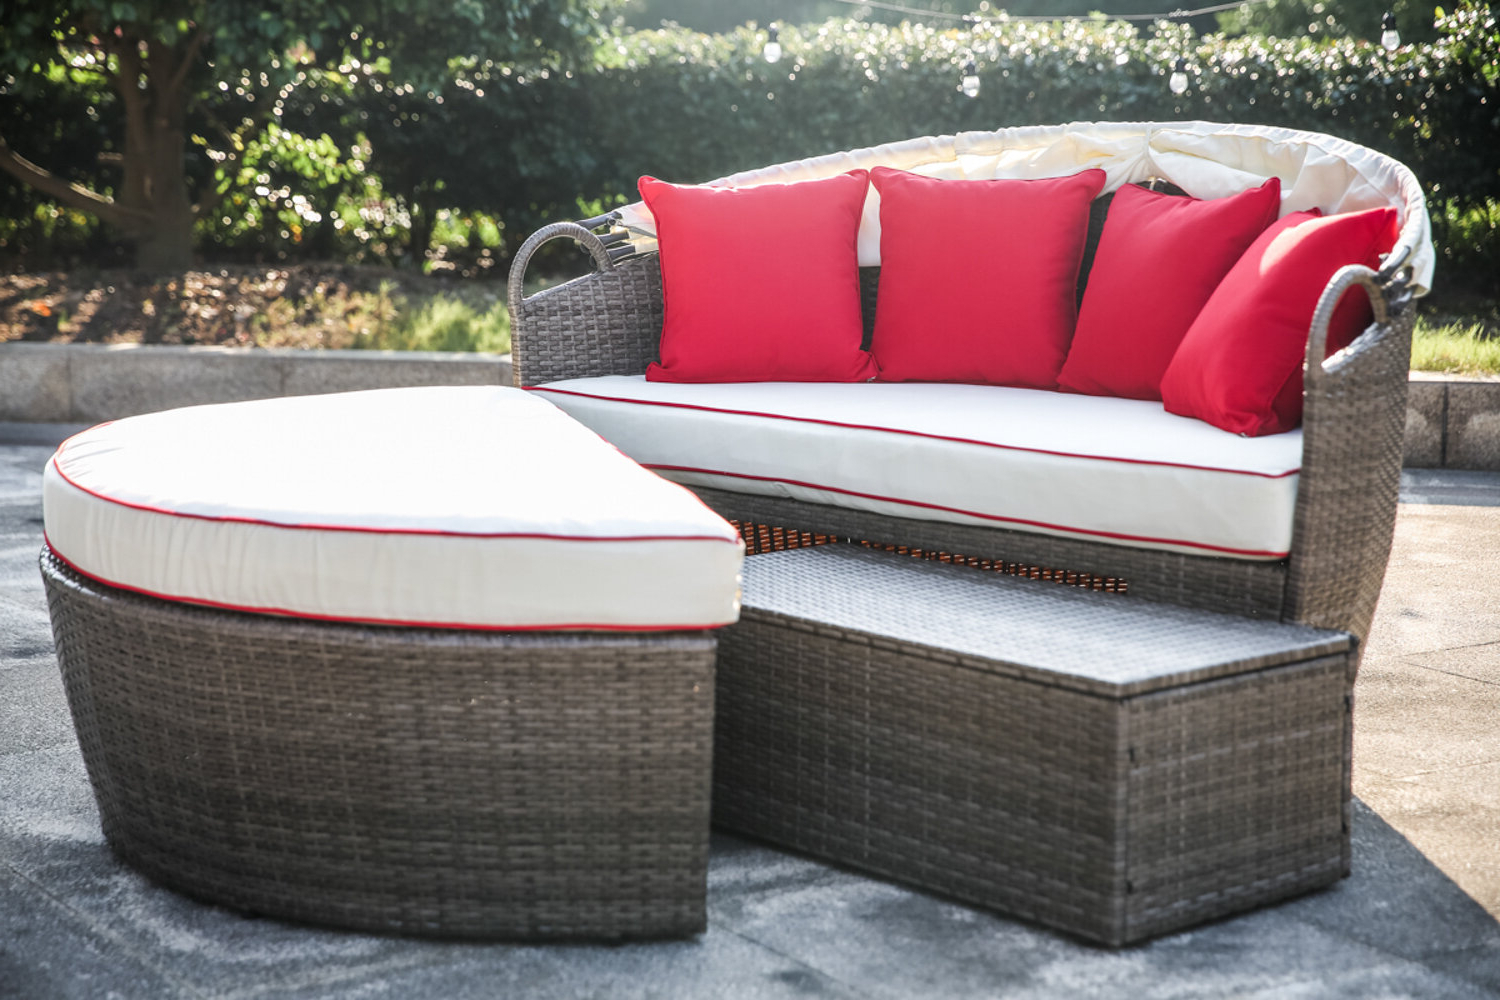 Wayfair With Regard To Latest Greening Outdoor Daybeds With Ottoman & Cushions (View 19 of 20)